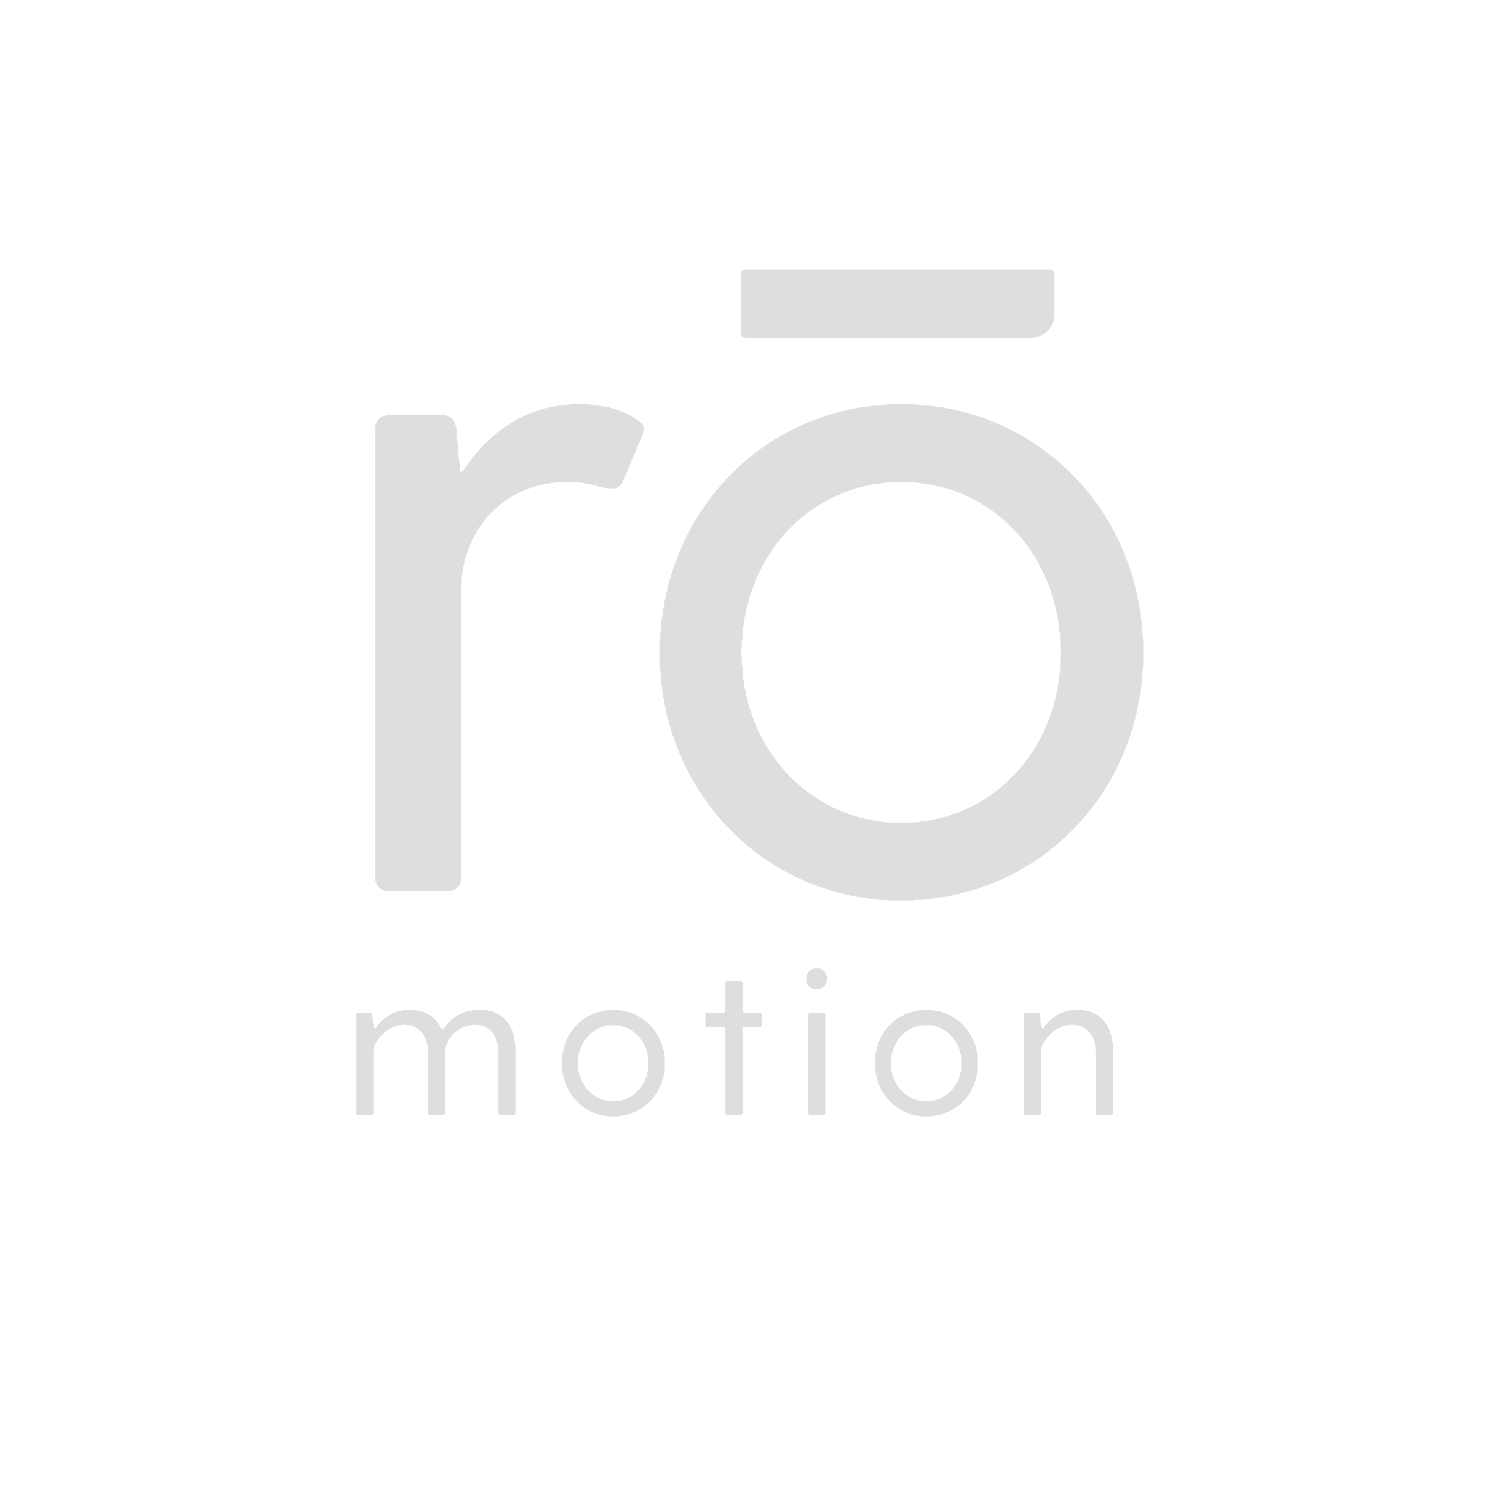 RoMotion - Videography Tools